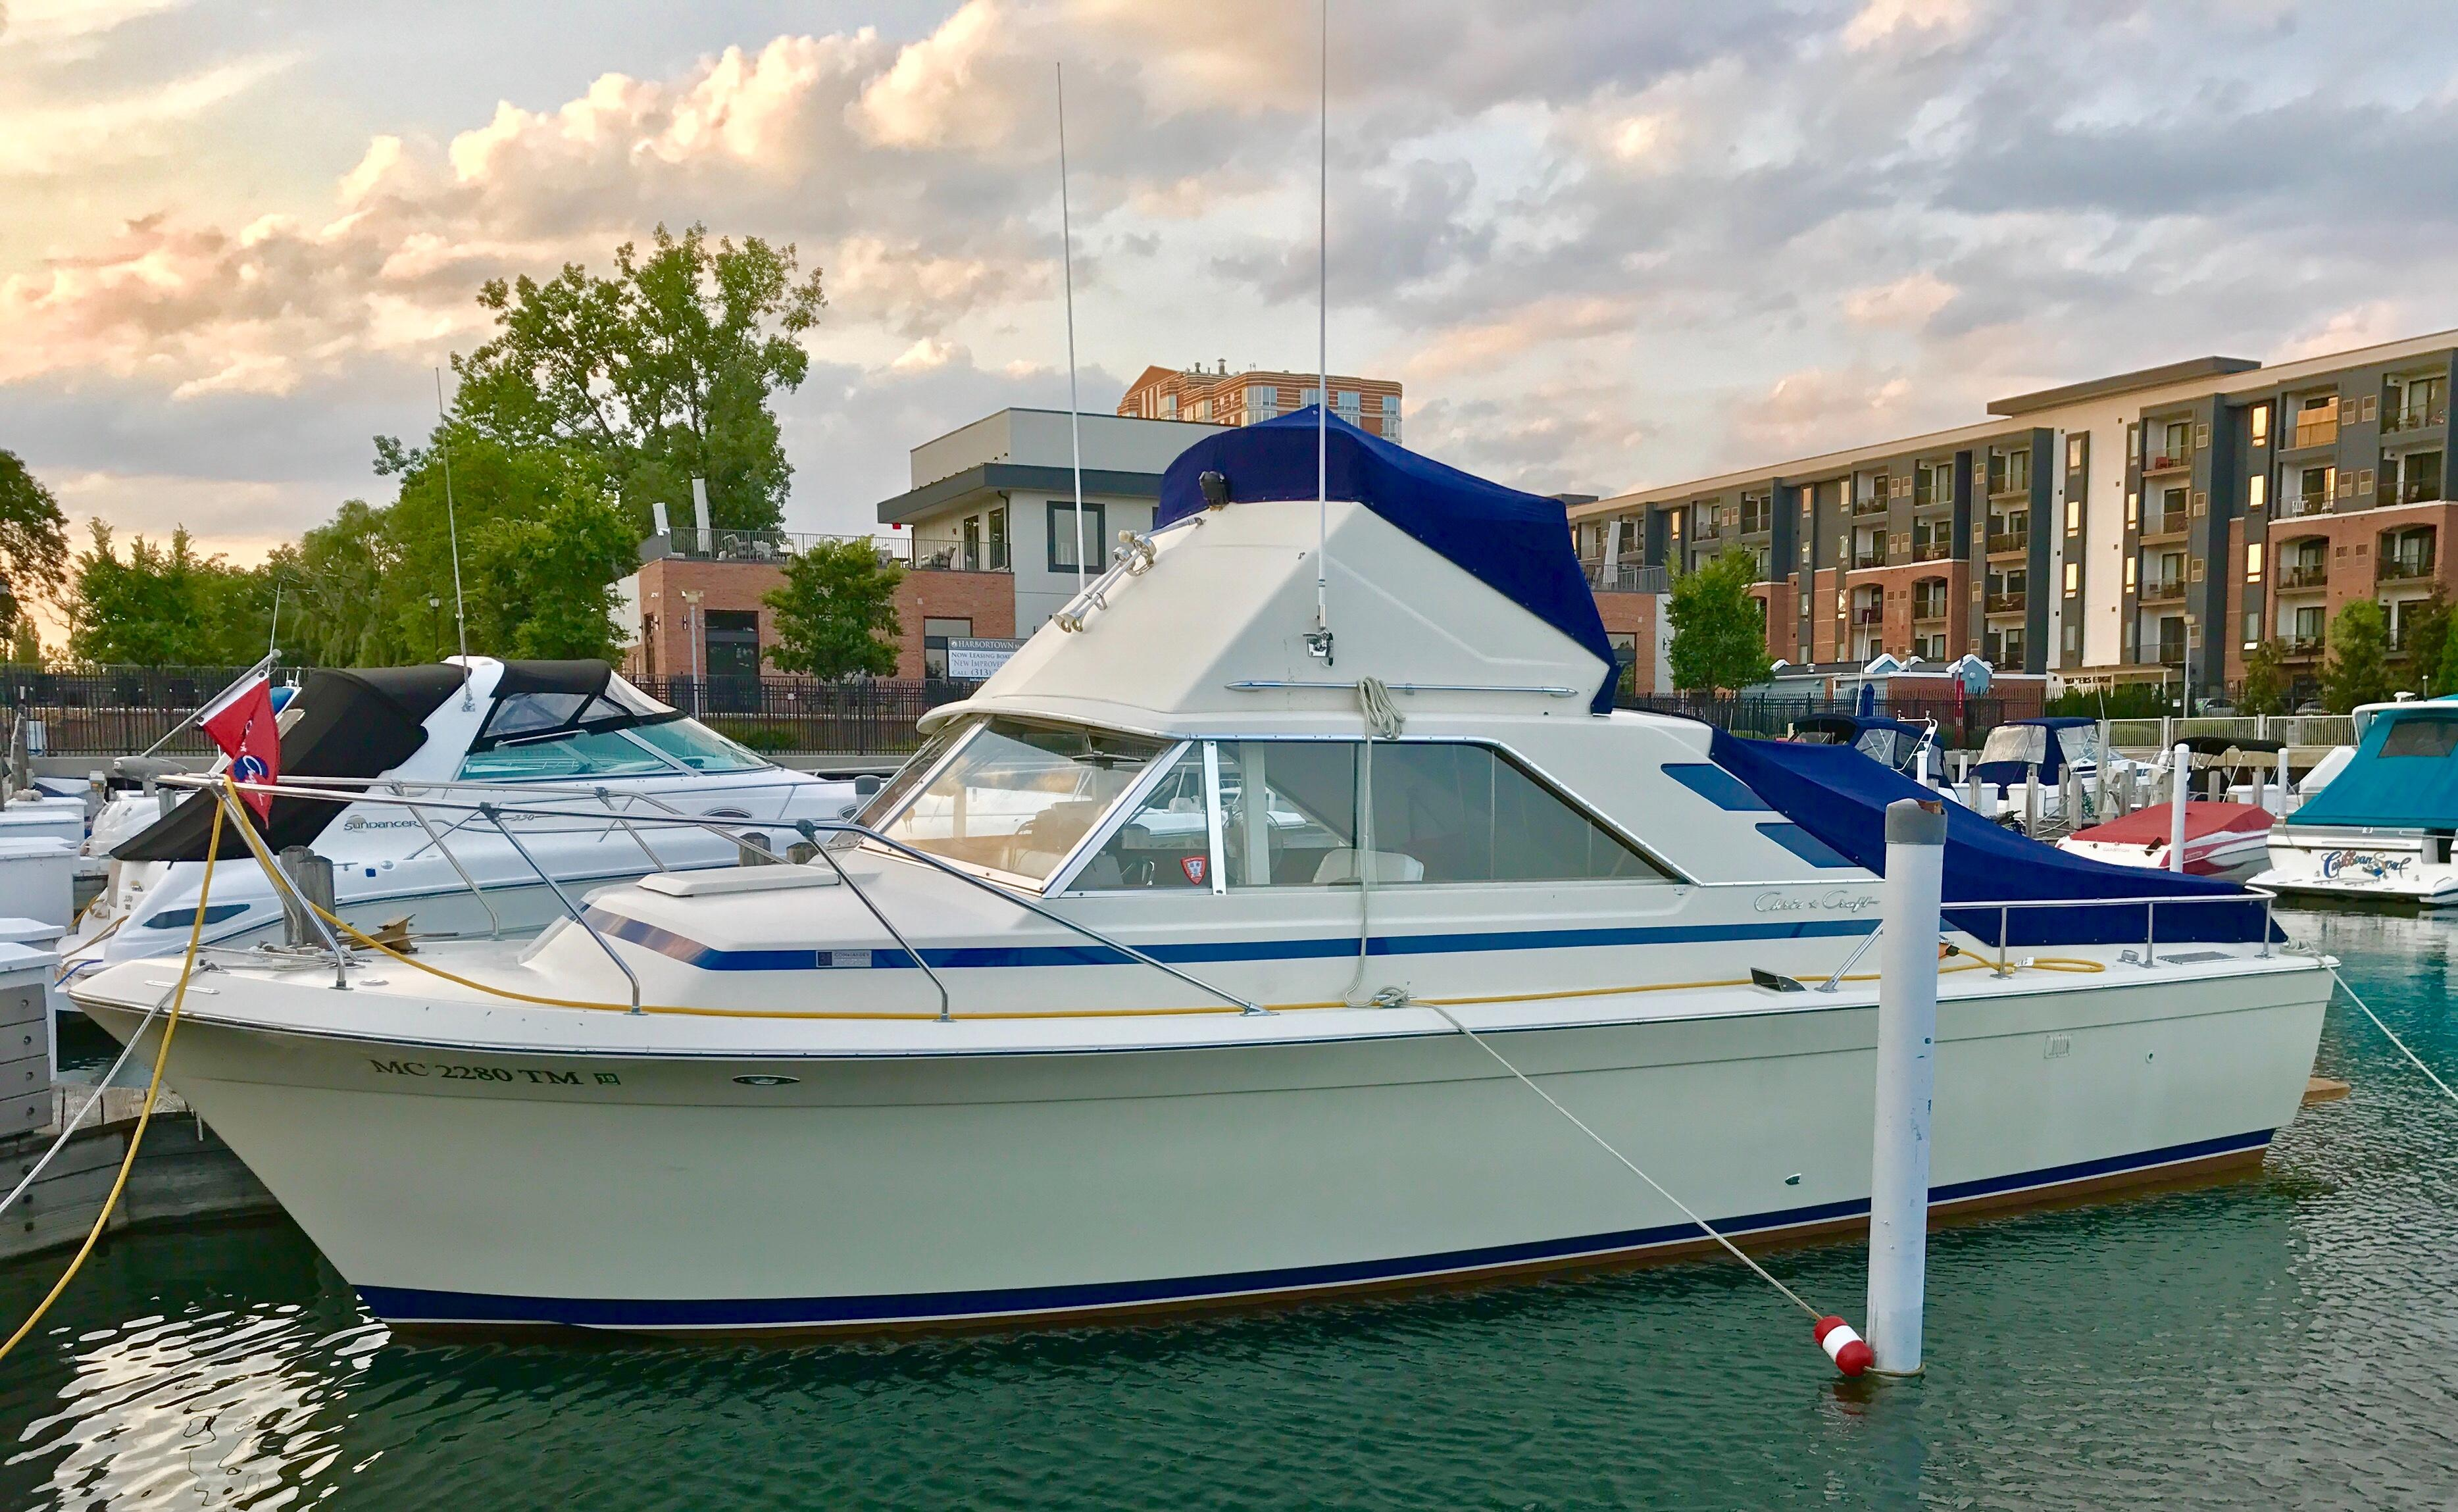 hight resolution of 1973 chris craft 315 commander power boat for sale www yachtworld com chris craft wiring diagram electrical system